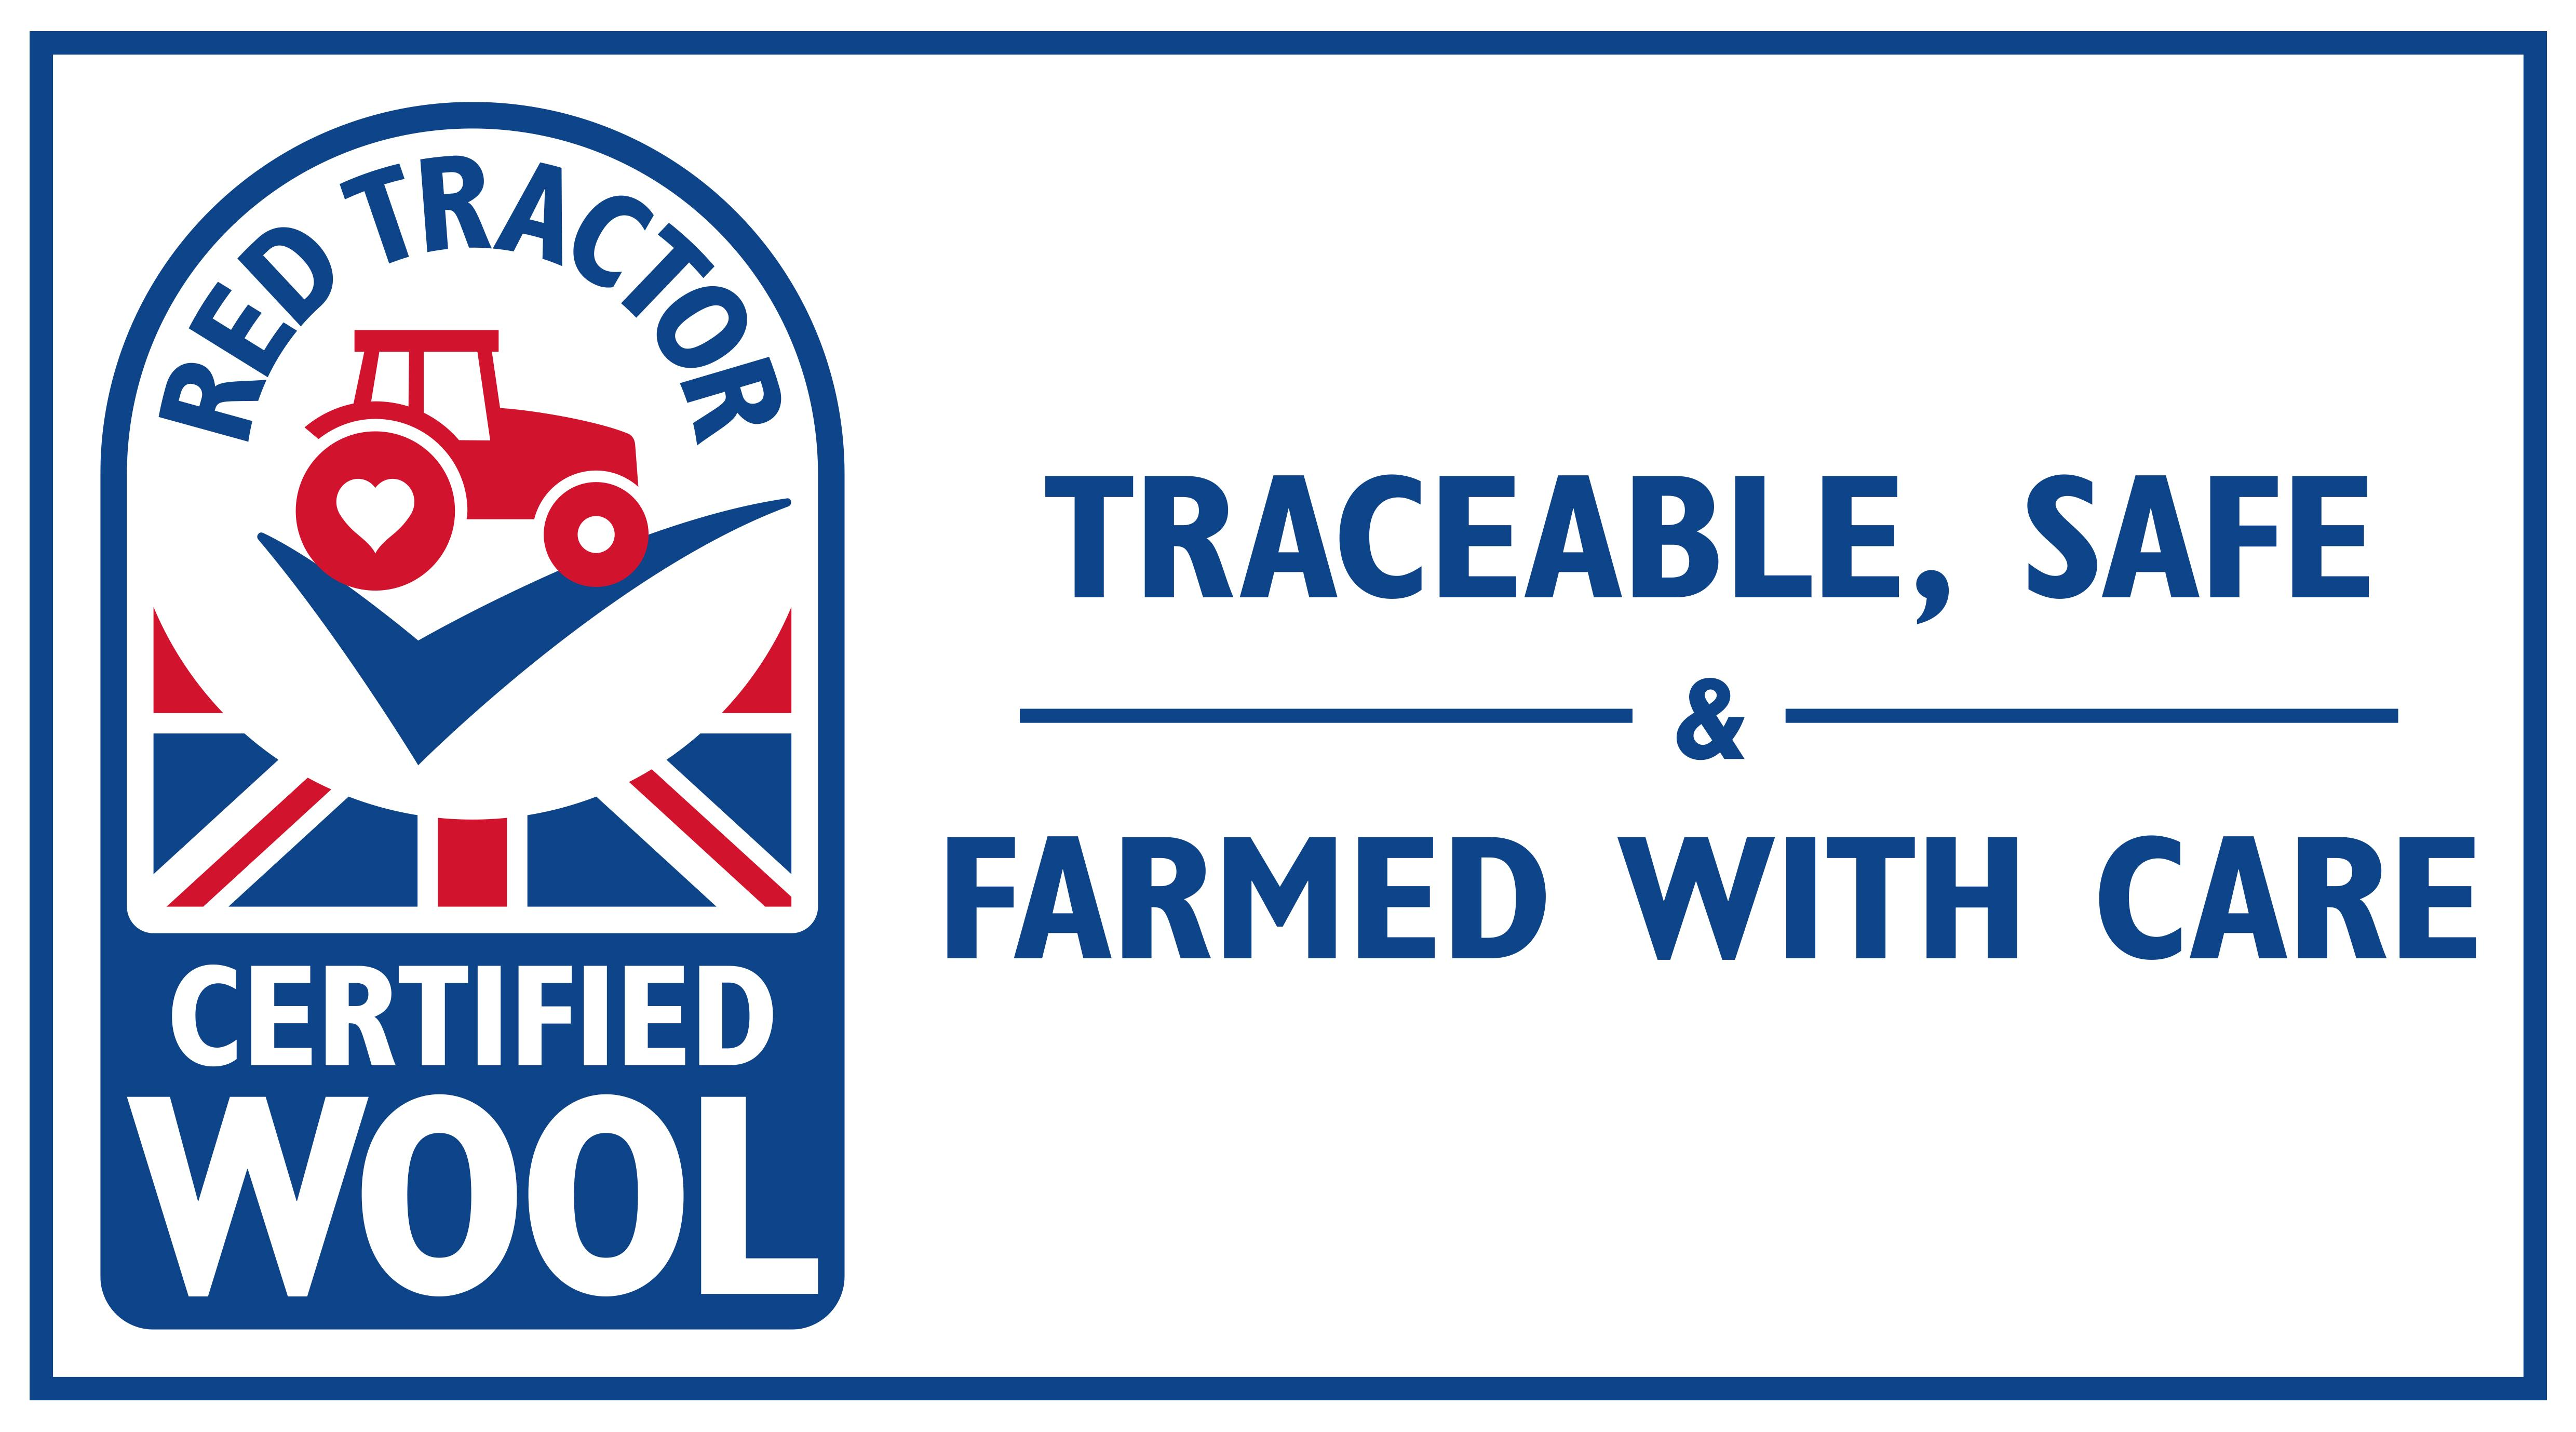 Red_Tractor_logo_with_slogan_wecompress.com.jpg